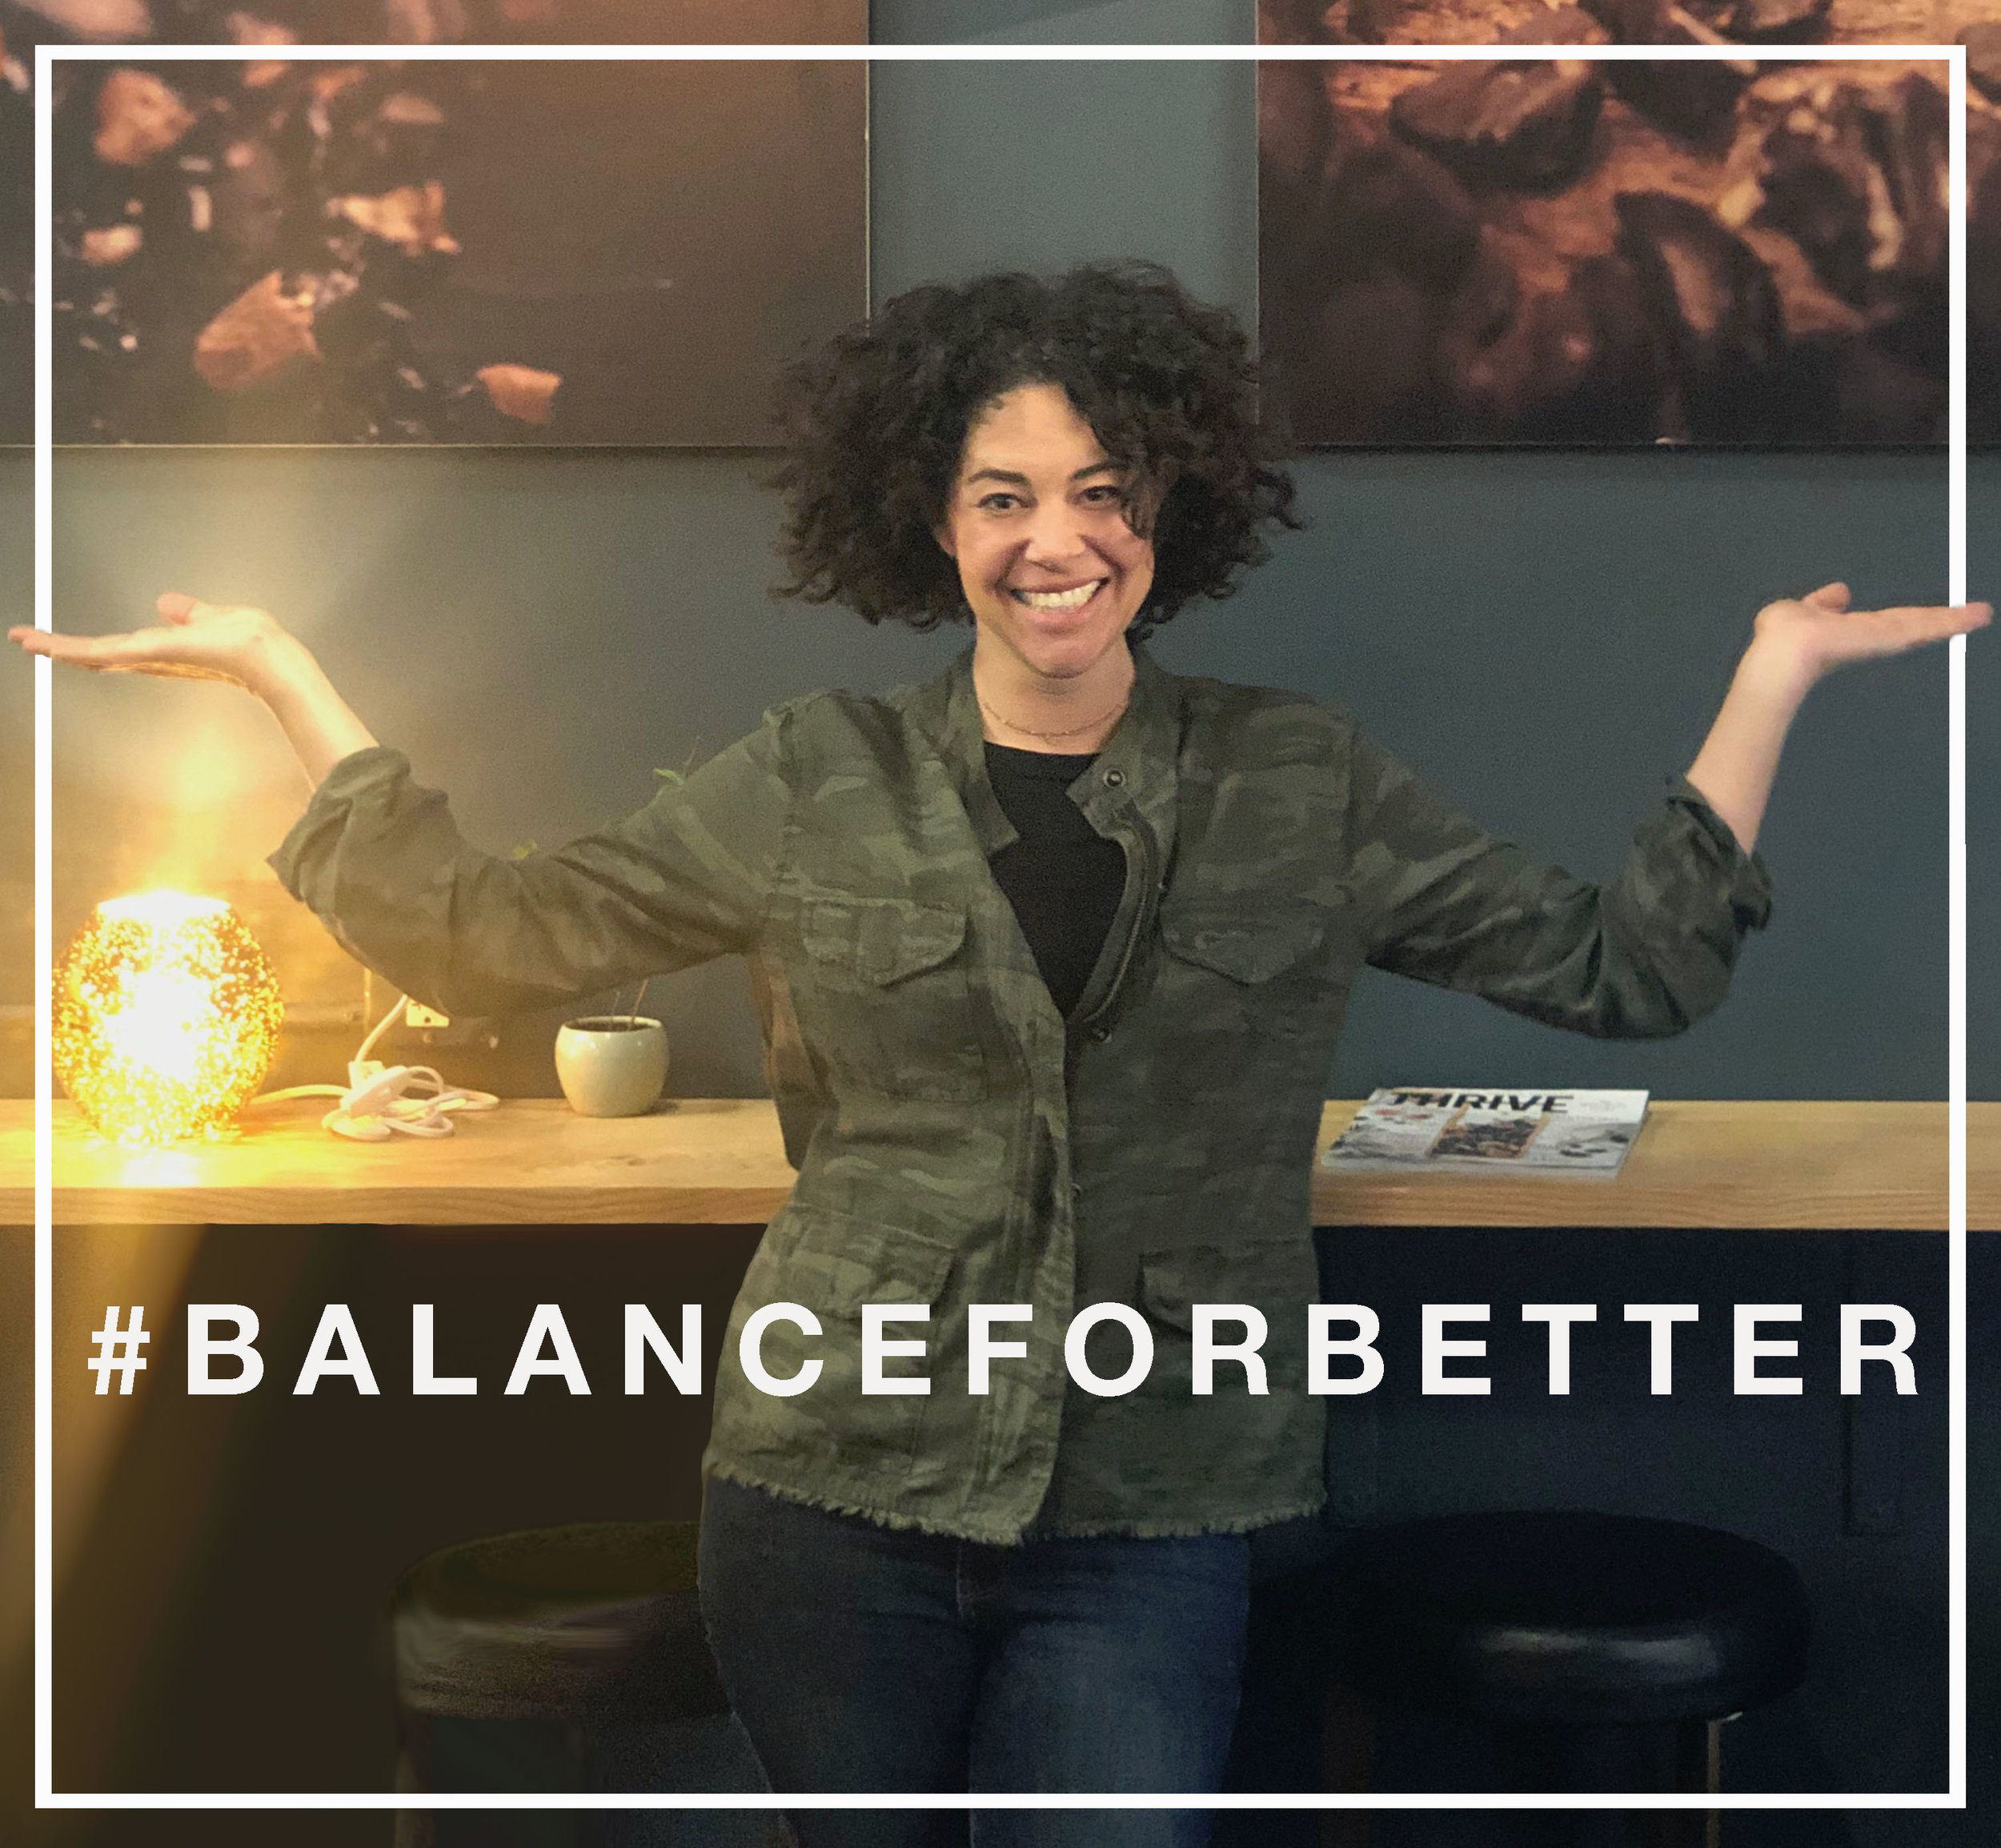 CHRISTINE SMITH #BALANCEFORBETTER PIC.jpg